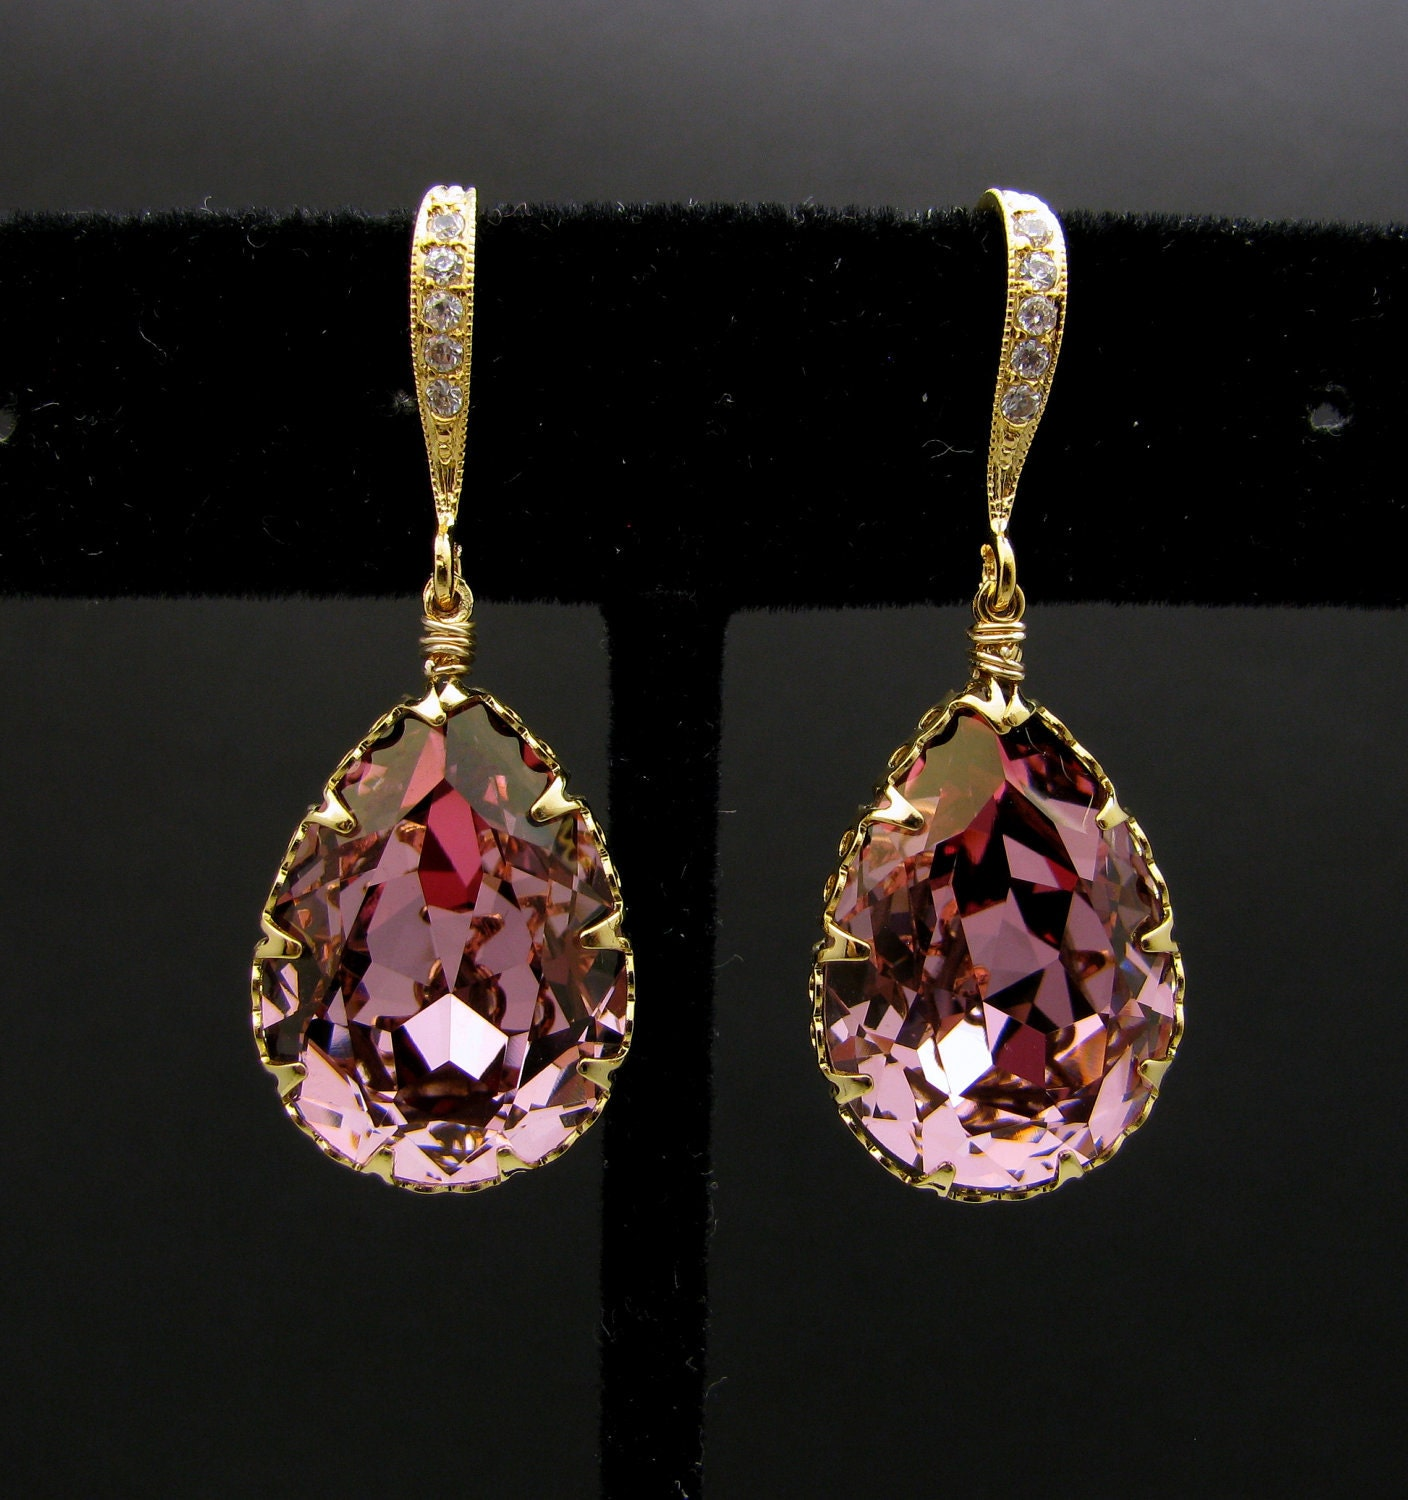 Swarovski Antique Pink Teardrop Earrings With Gold Vermeil. Small Chains. Baguette Wedding Band. Saphire Watches. Ring Platinum. Signet Rings. 3mm Diamond. Jewelry Tanzanite. Light Pink Diamond